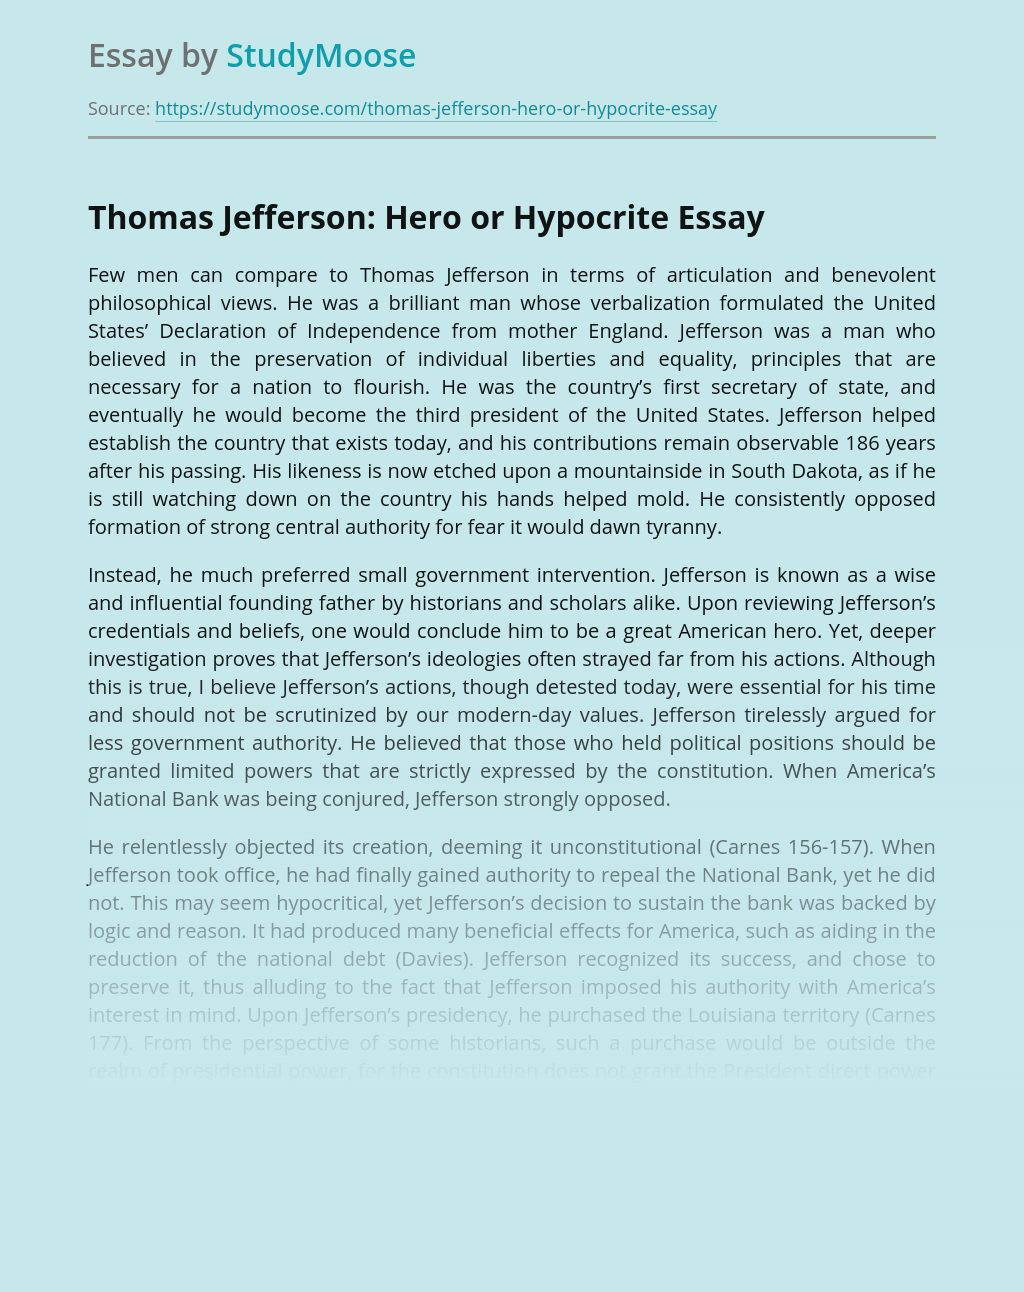 Thomas Jefferson: Hero or Hypocrite